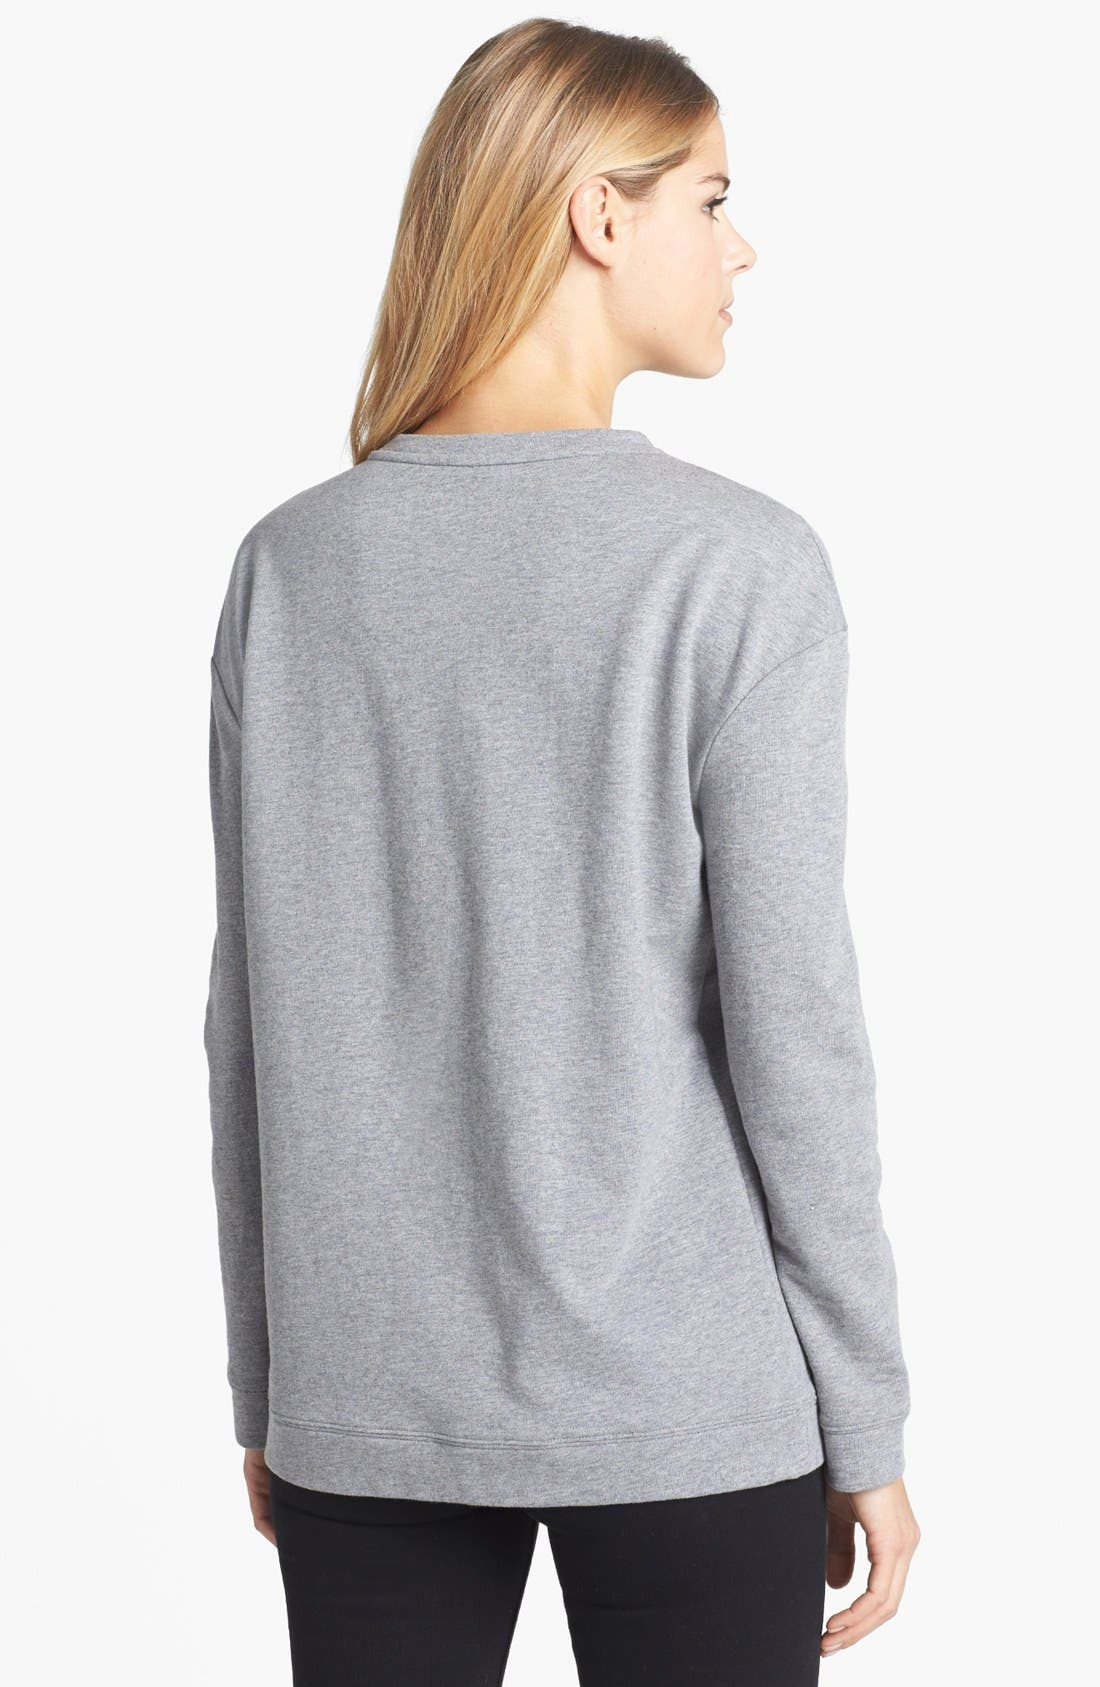 Alternate Image 2  - Two by Vince Camuto Embellished Necklace Cotton Blend Sweatshirt